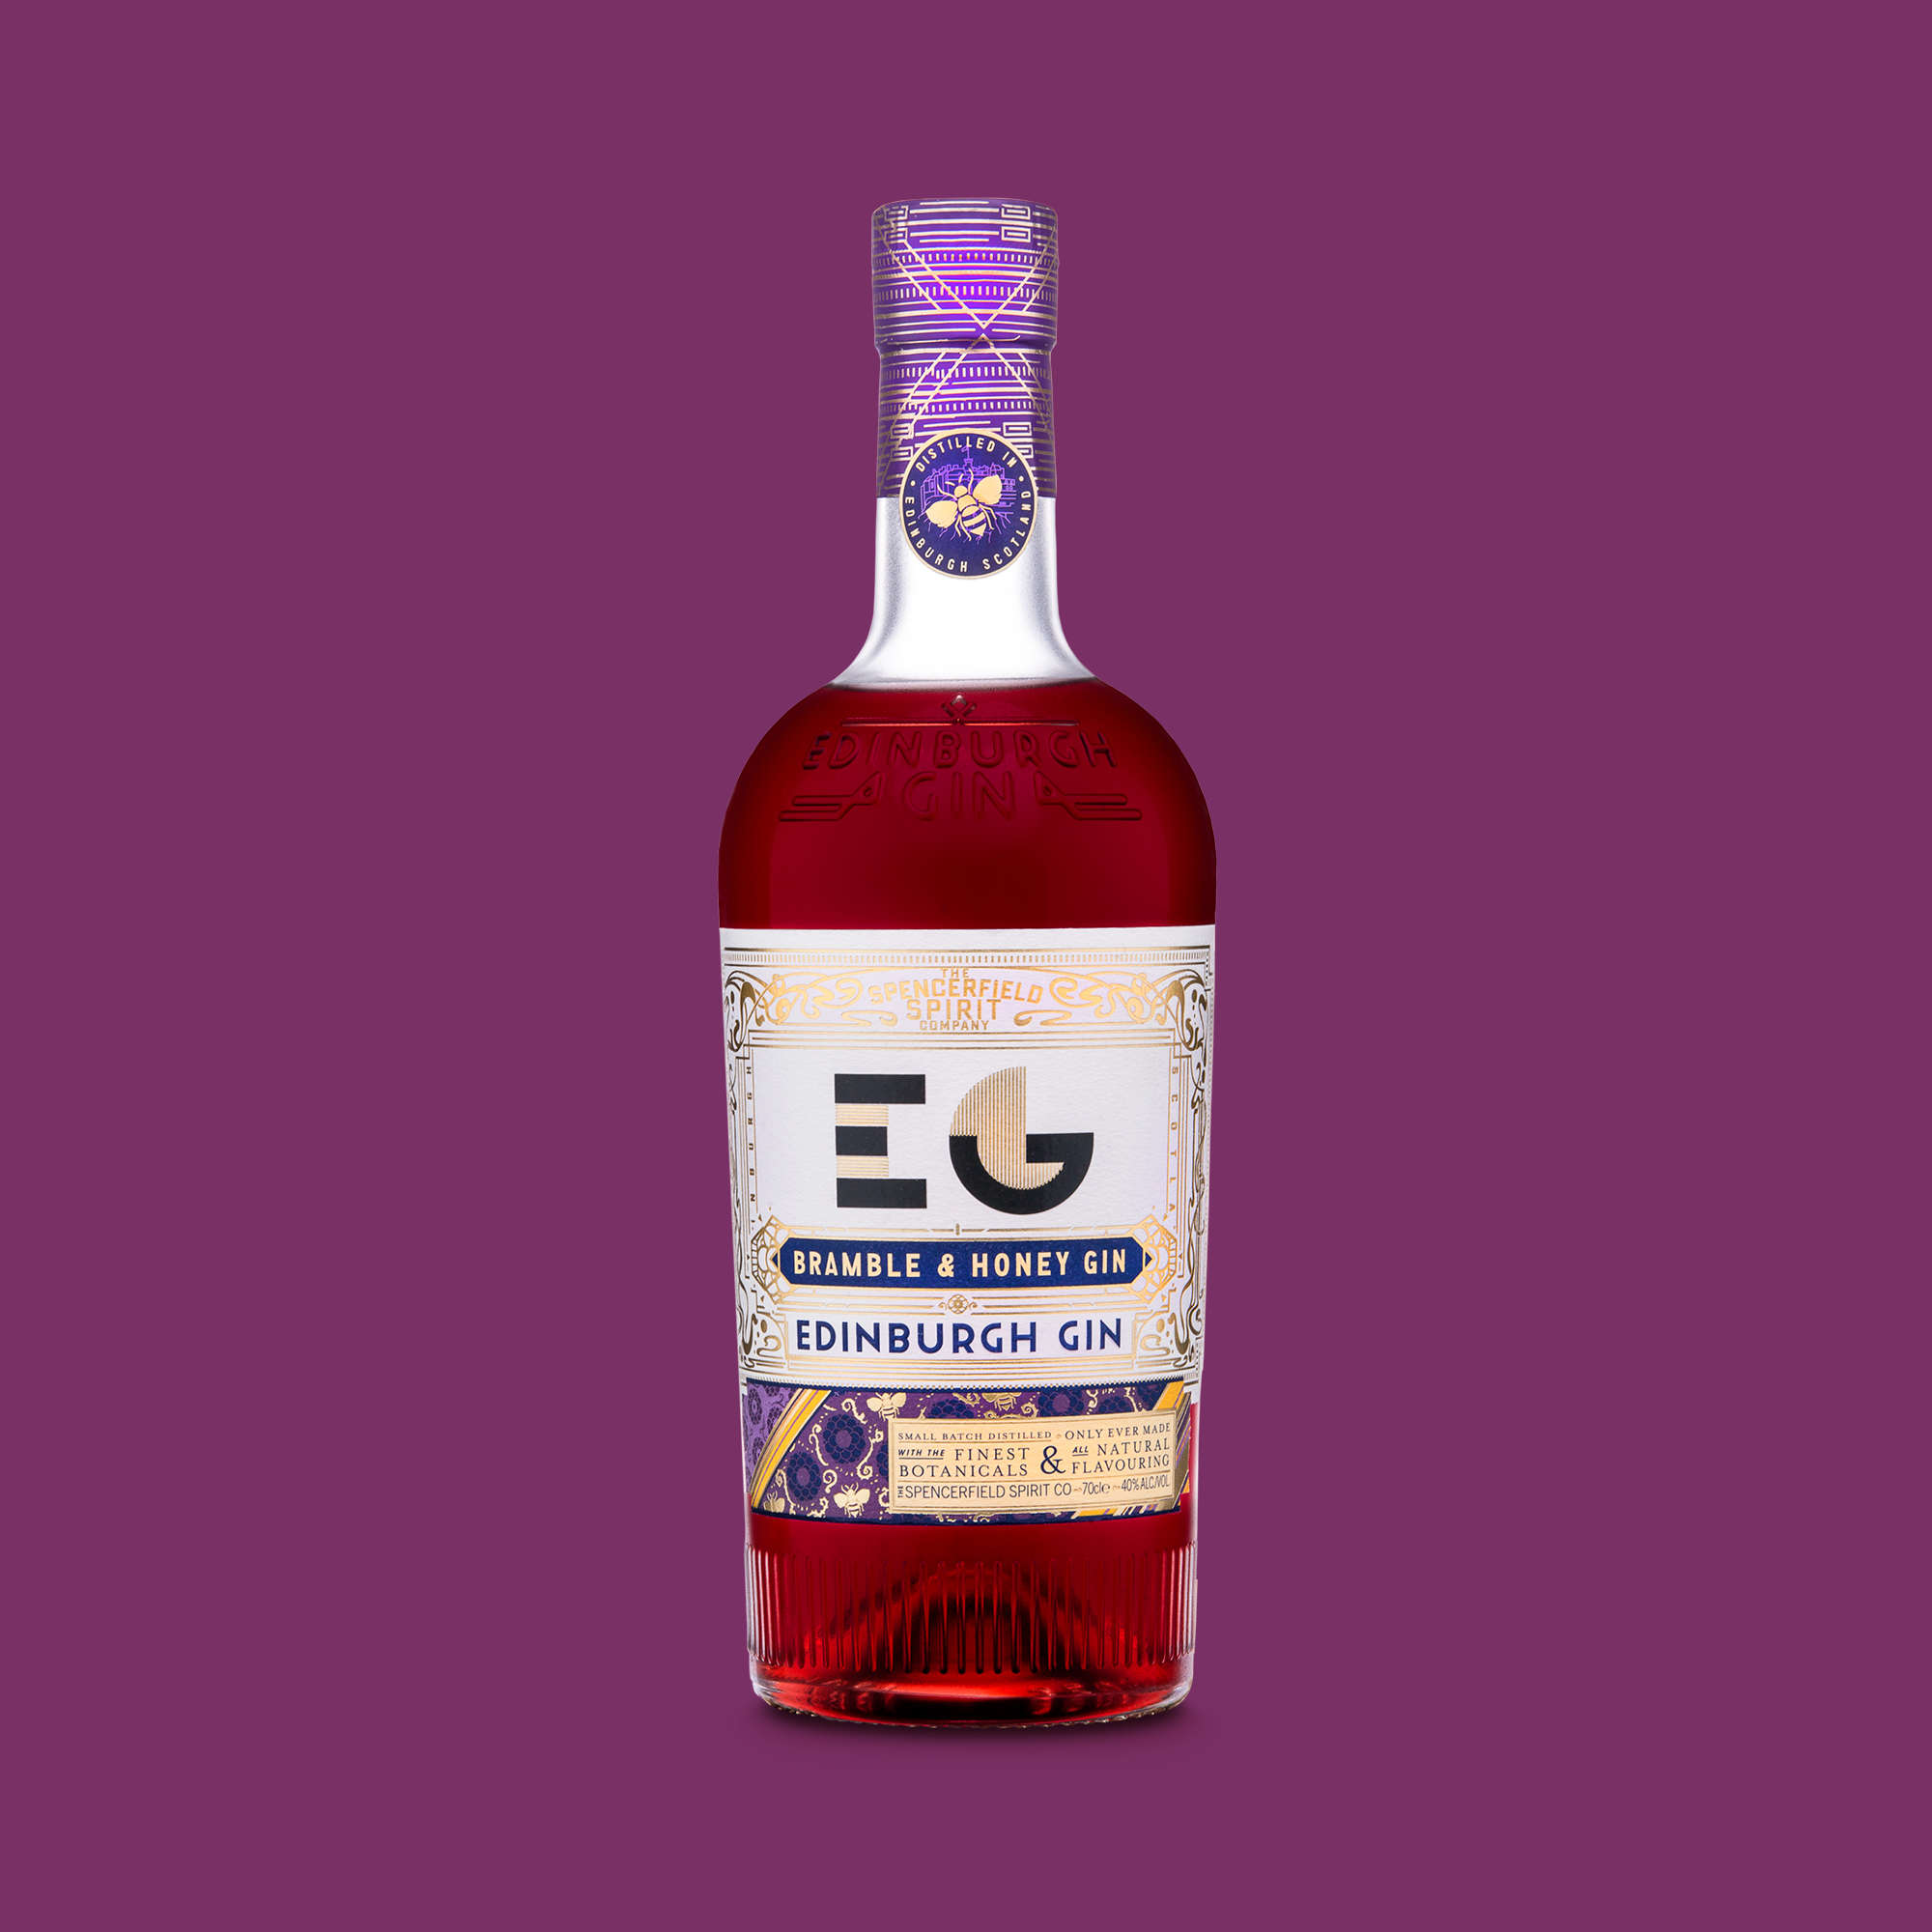 EG_Bramble-Honey_2000x2000px_Bottle